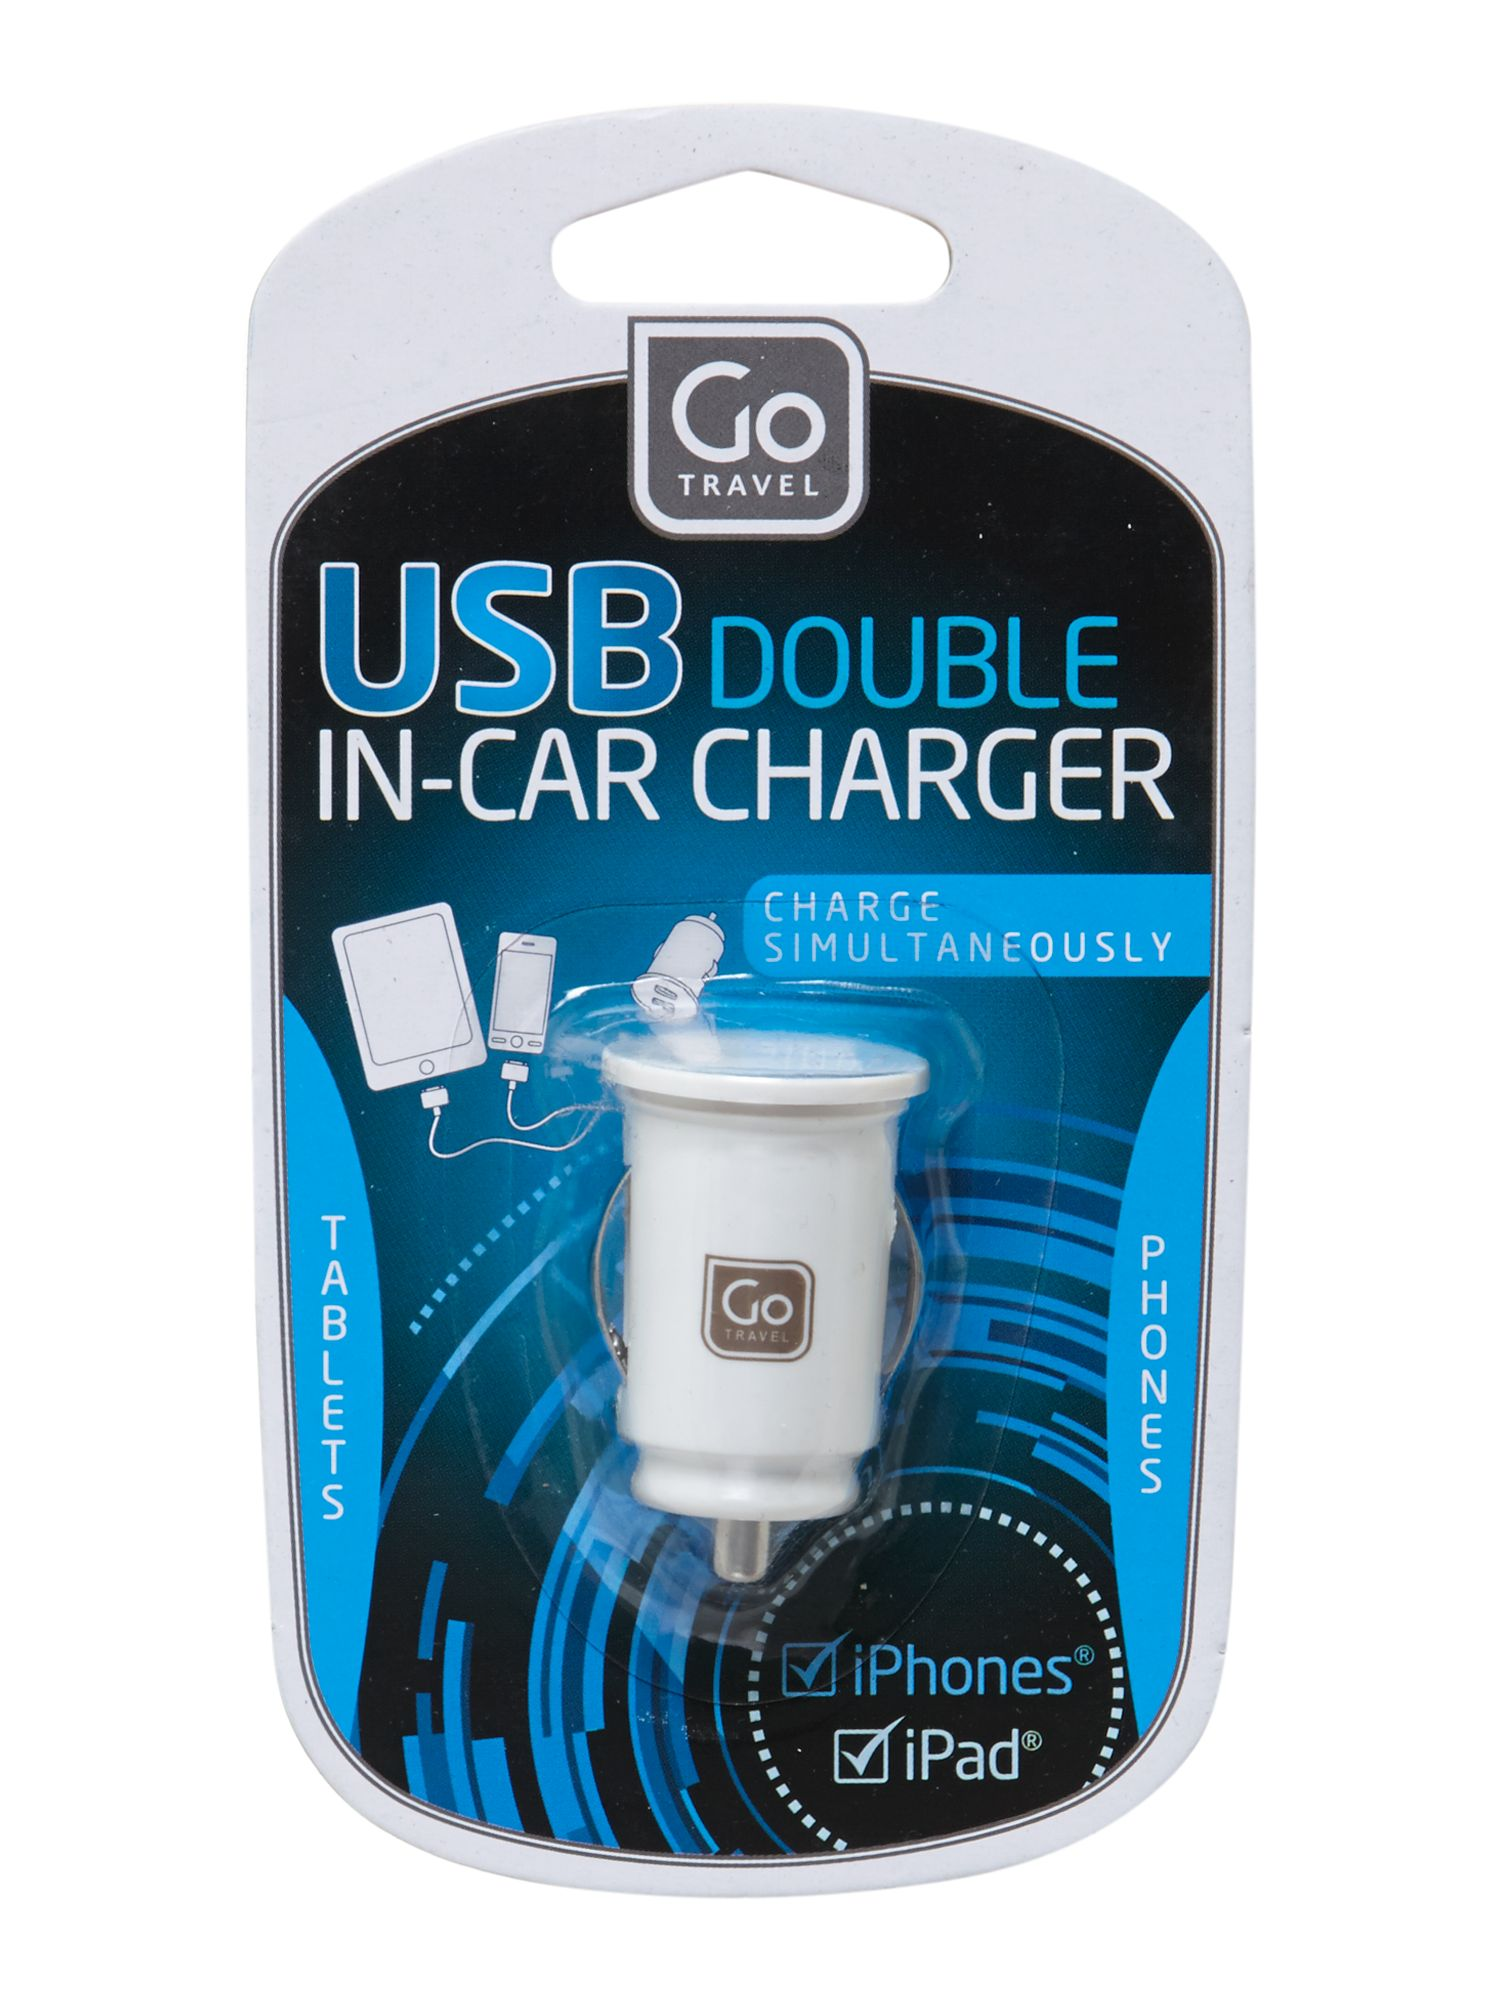 Go Travel USB In- car charger